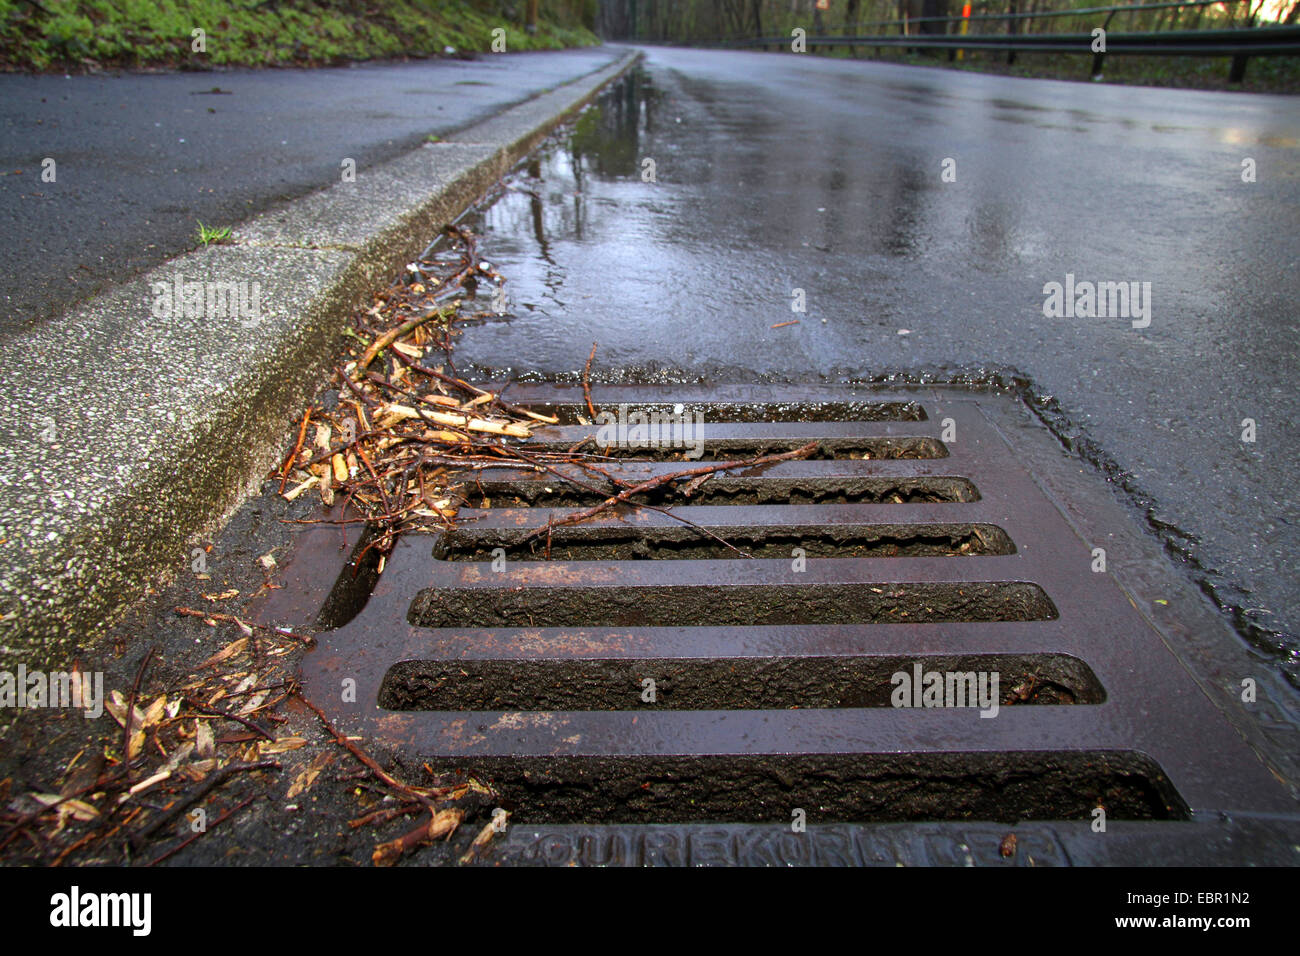 rain water streaming into a gully hole, Germany - Stock Image